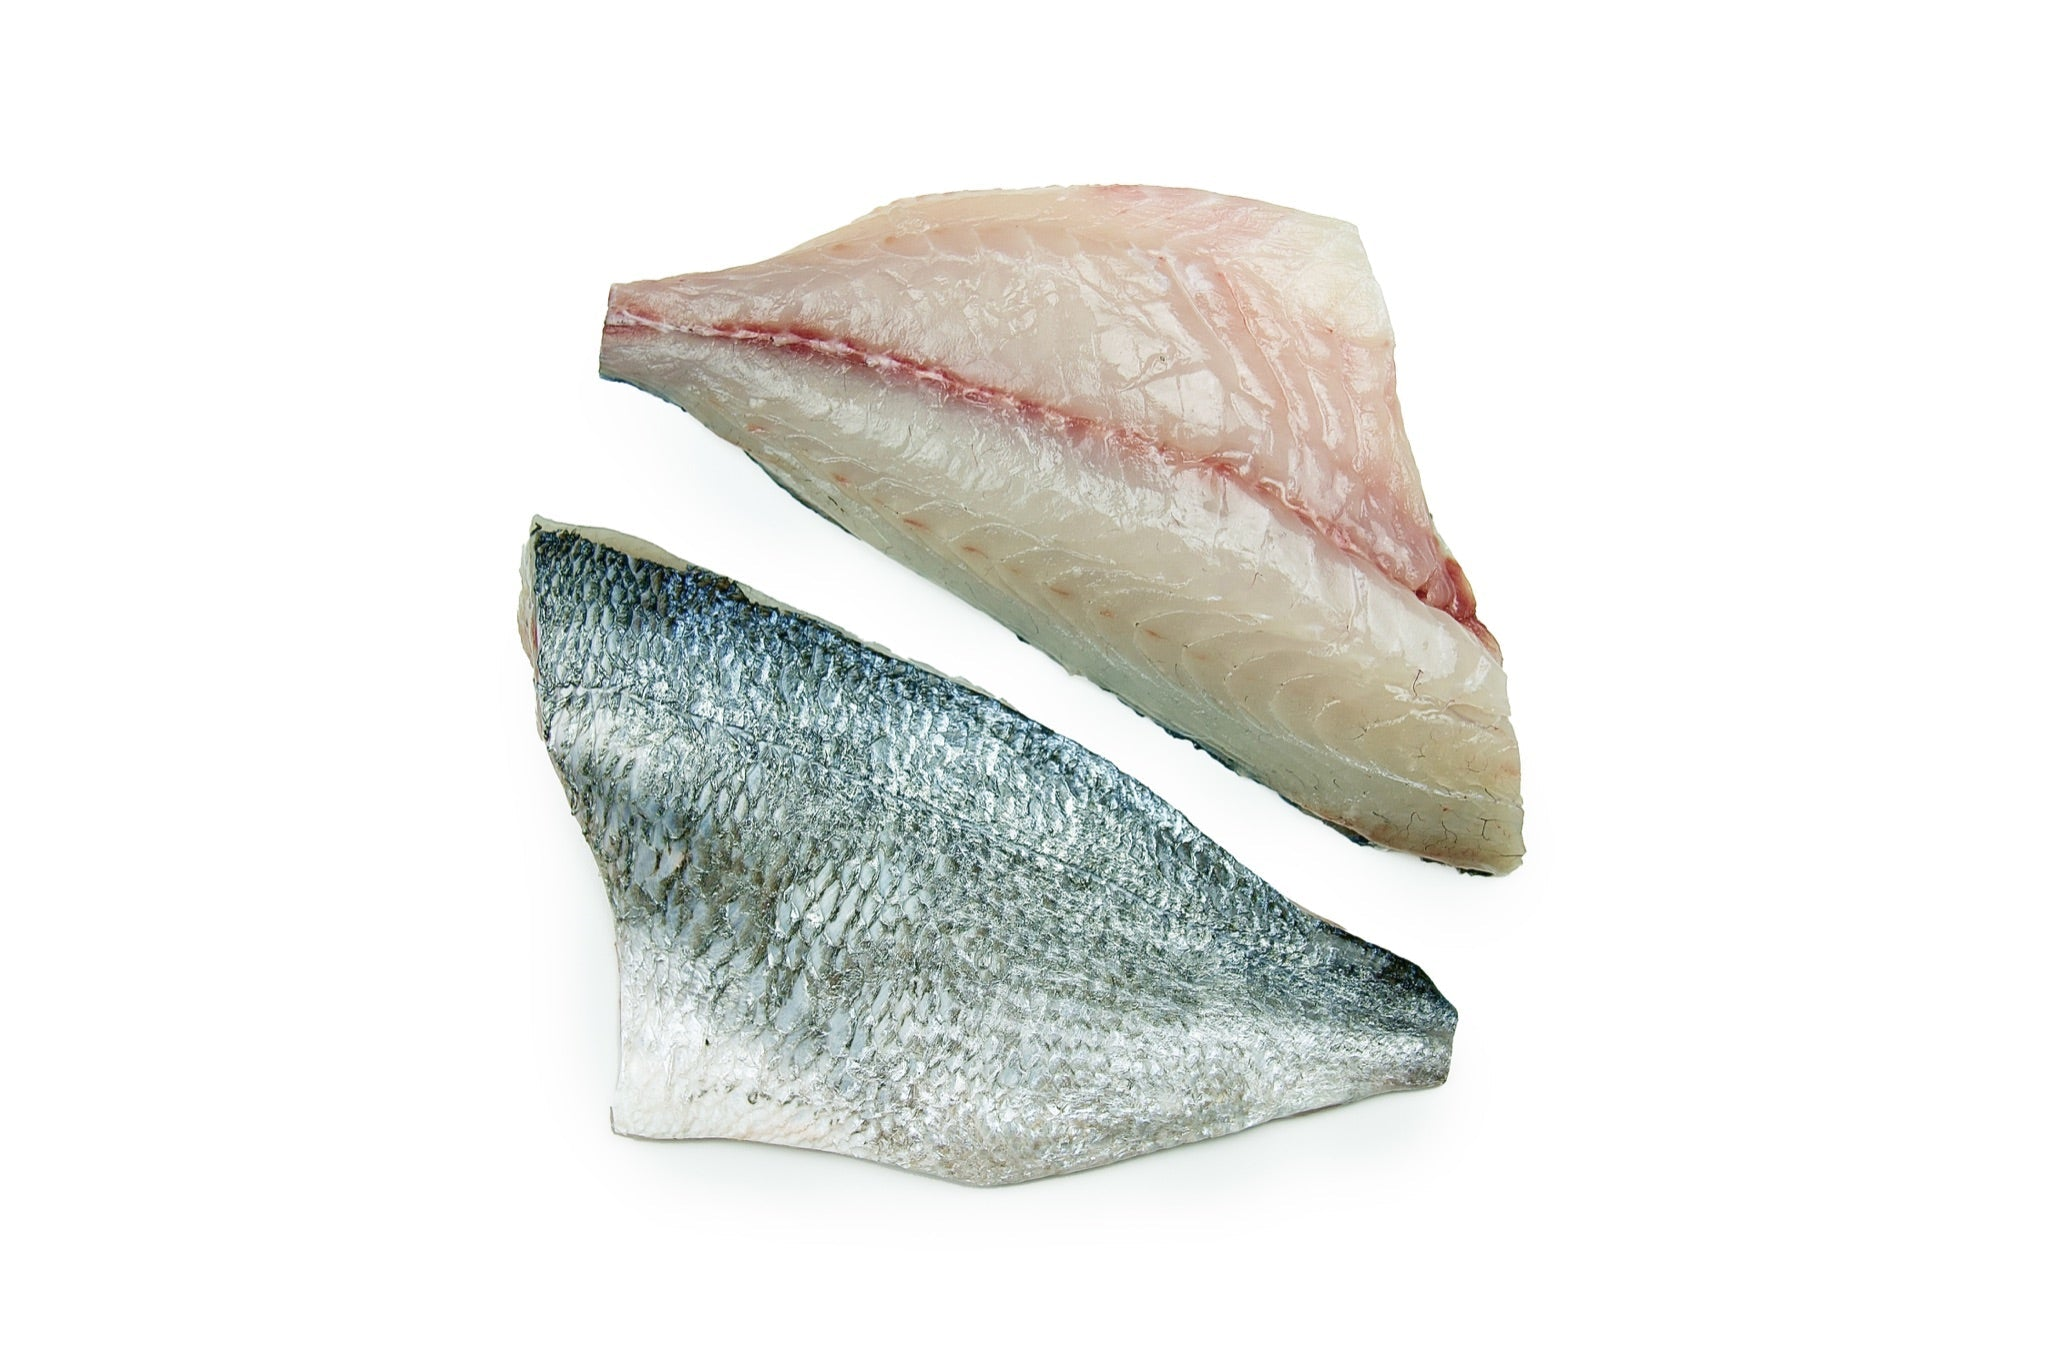 Farmed Bream Fillet - 150g